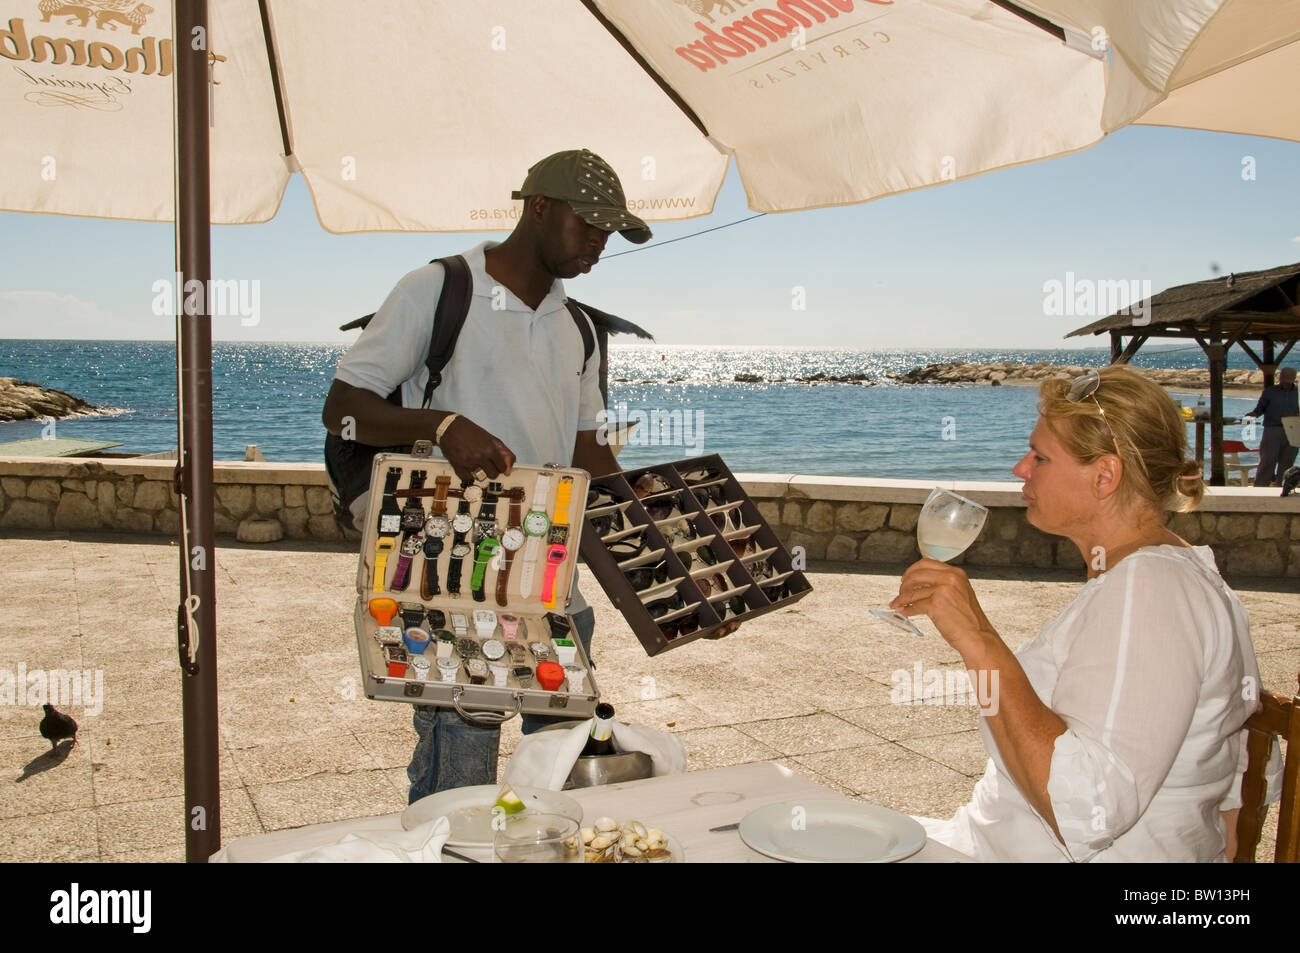 Spain Beach Malaga Watches clandestine immigrant immigration from Africa - Stock Image